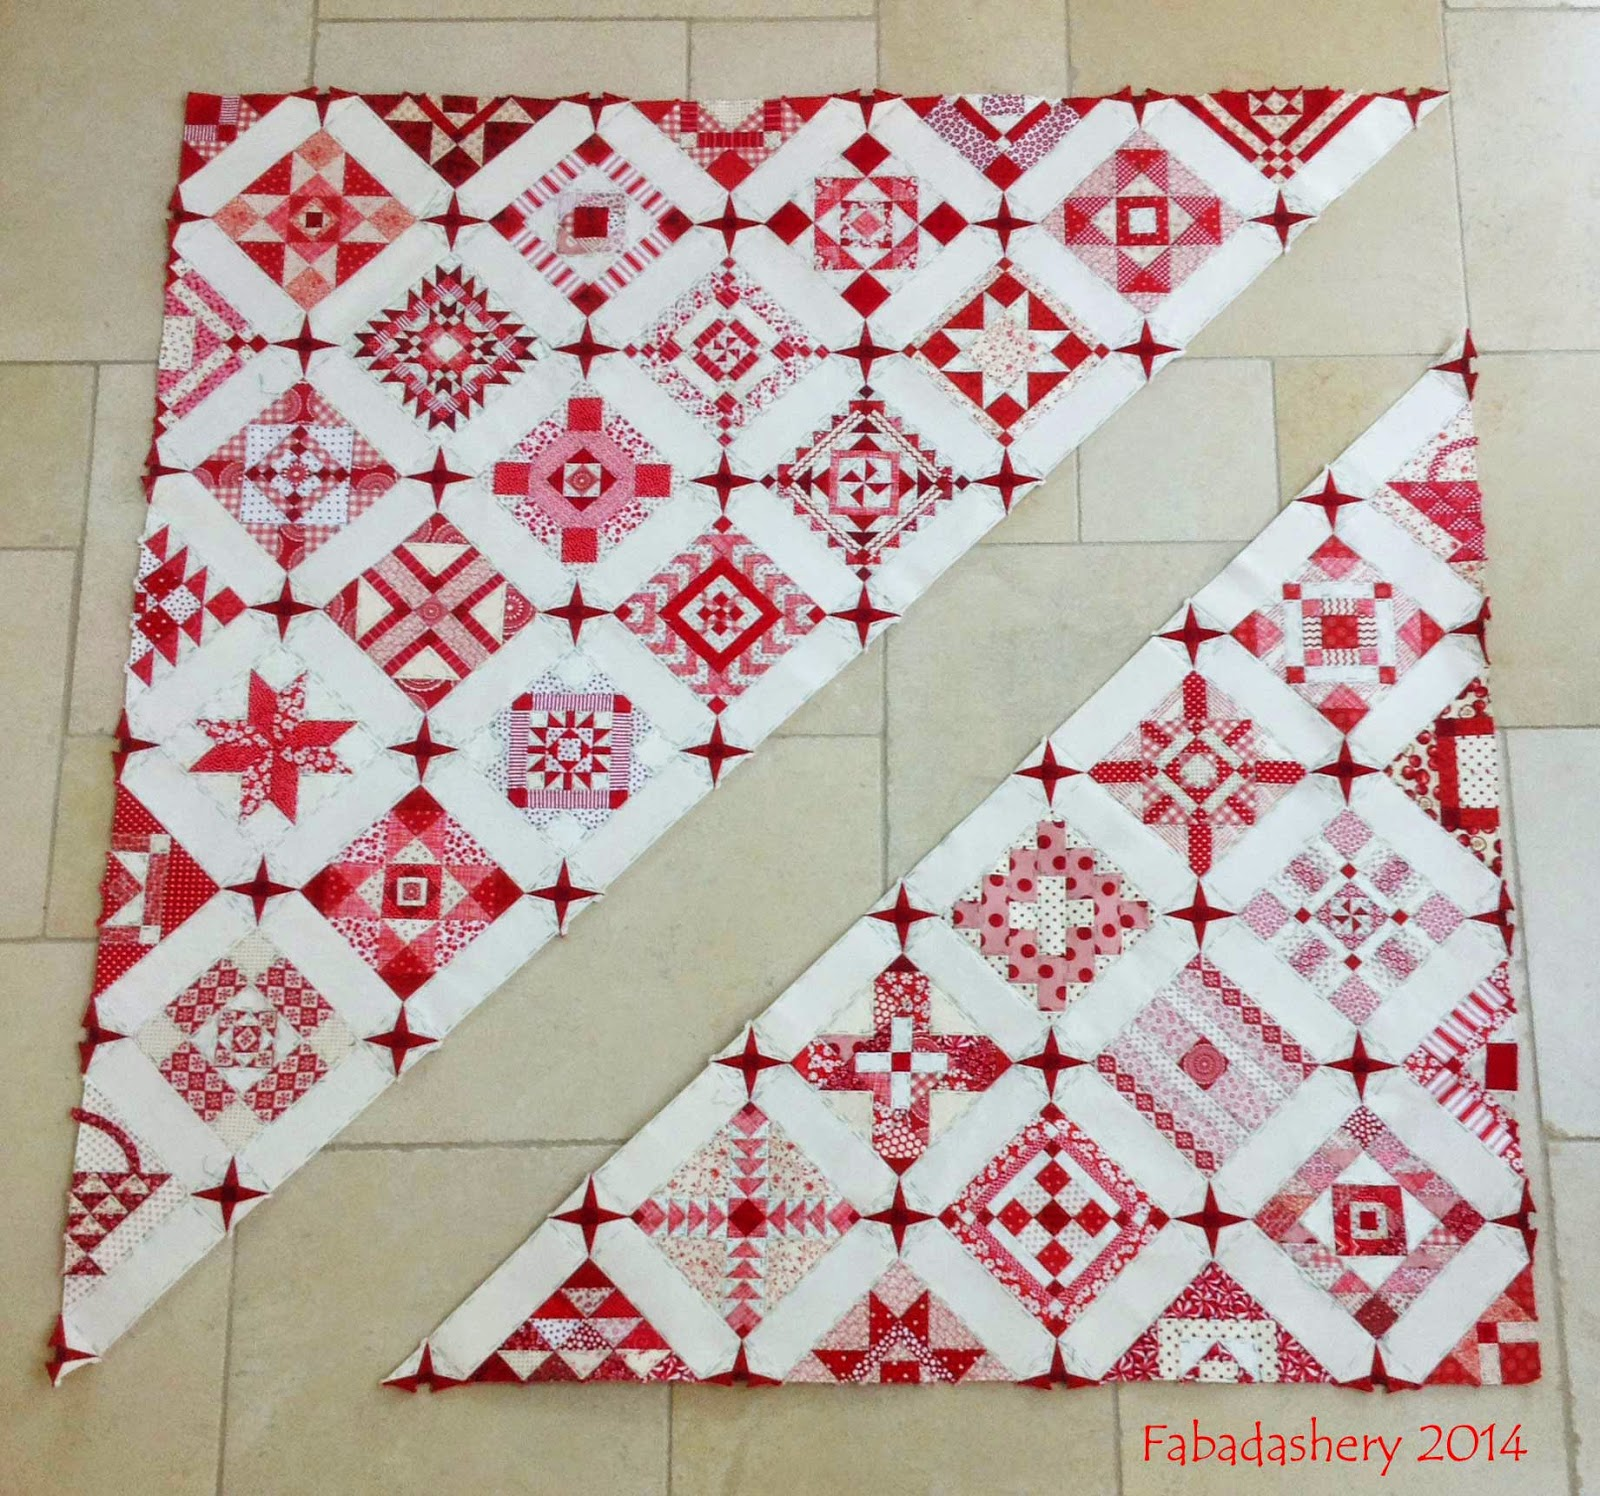 Nearly Insane Quilt Construction - September 2014